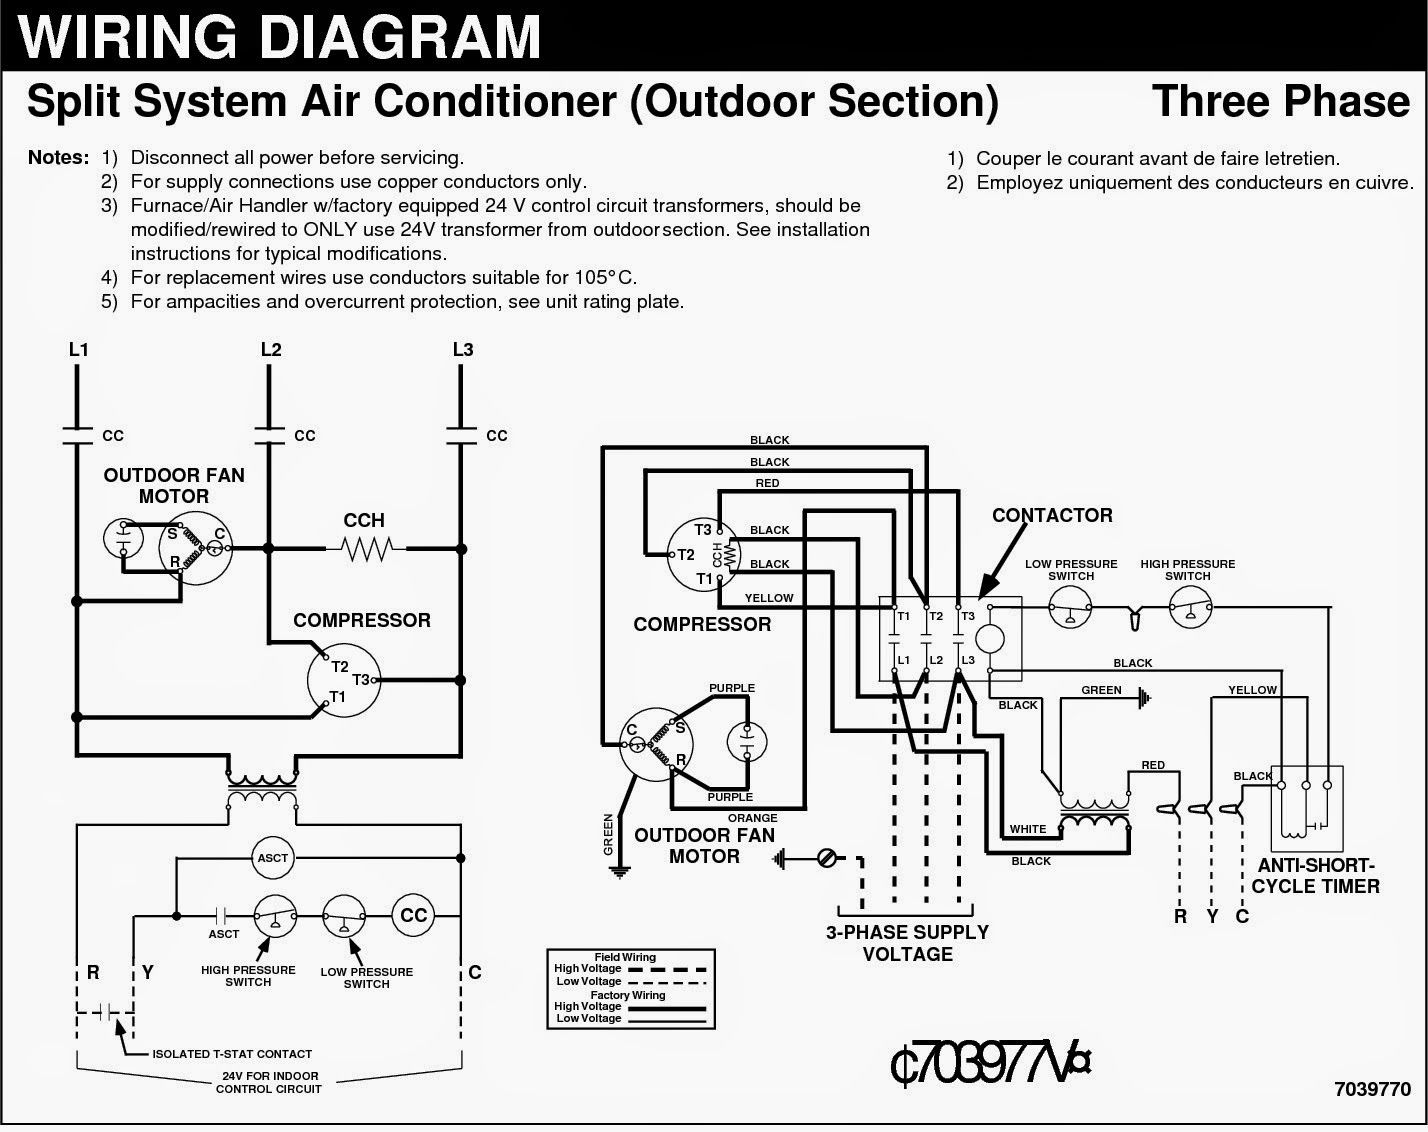 Electrical Wiring Diagrams For Air Conditioning Systems Part Two Electrical Knowhow In 2020 Electrical Diagram Air Conditioning System Electrical Wiring Diagram